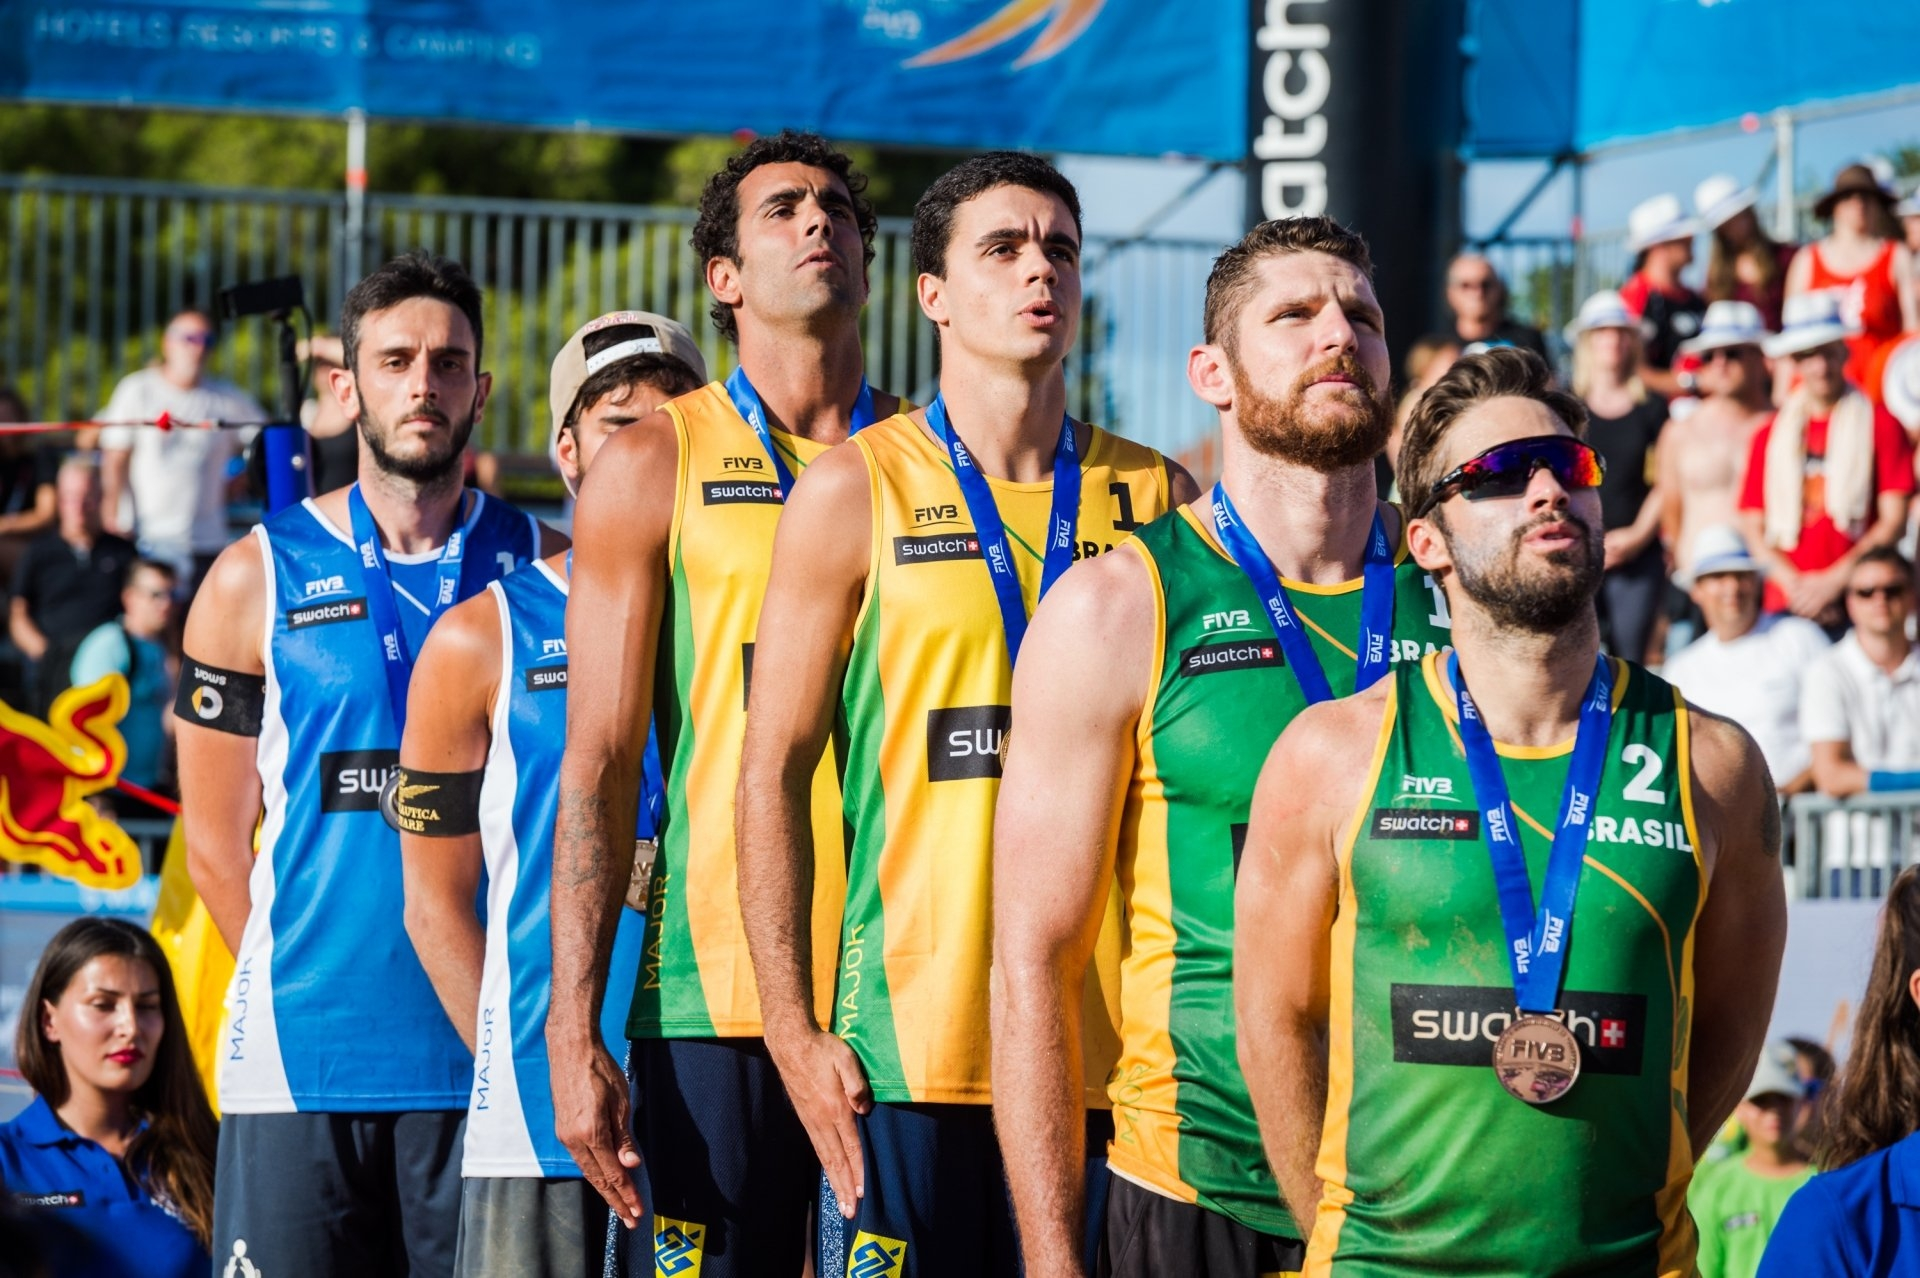 The bronze medal in Poreč was the Brazilians' best result in the 2017 Major Series